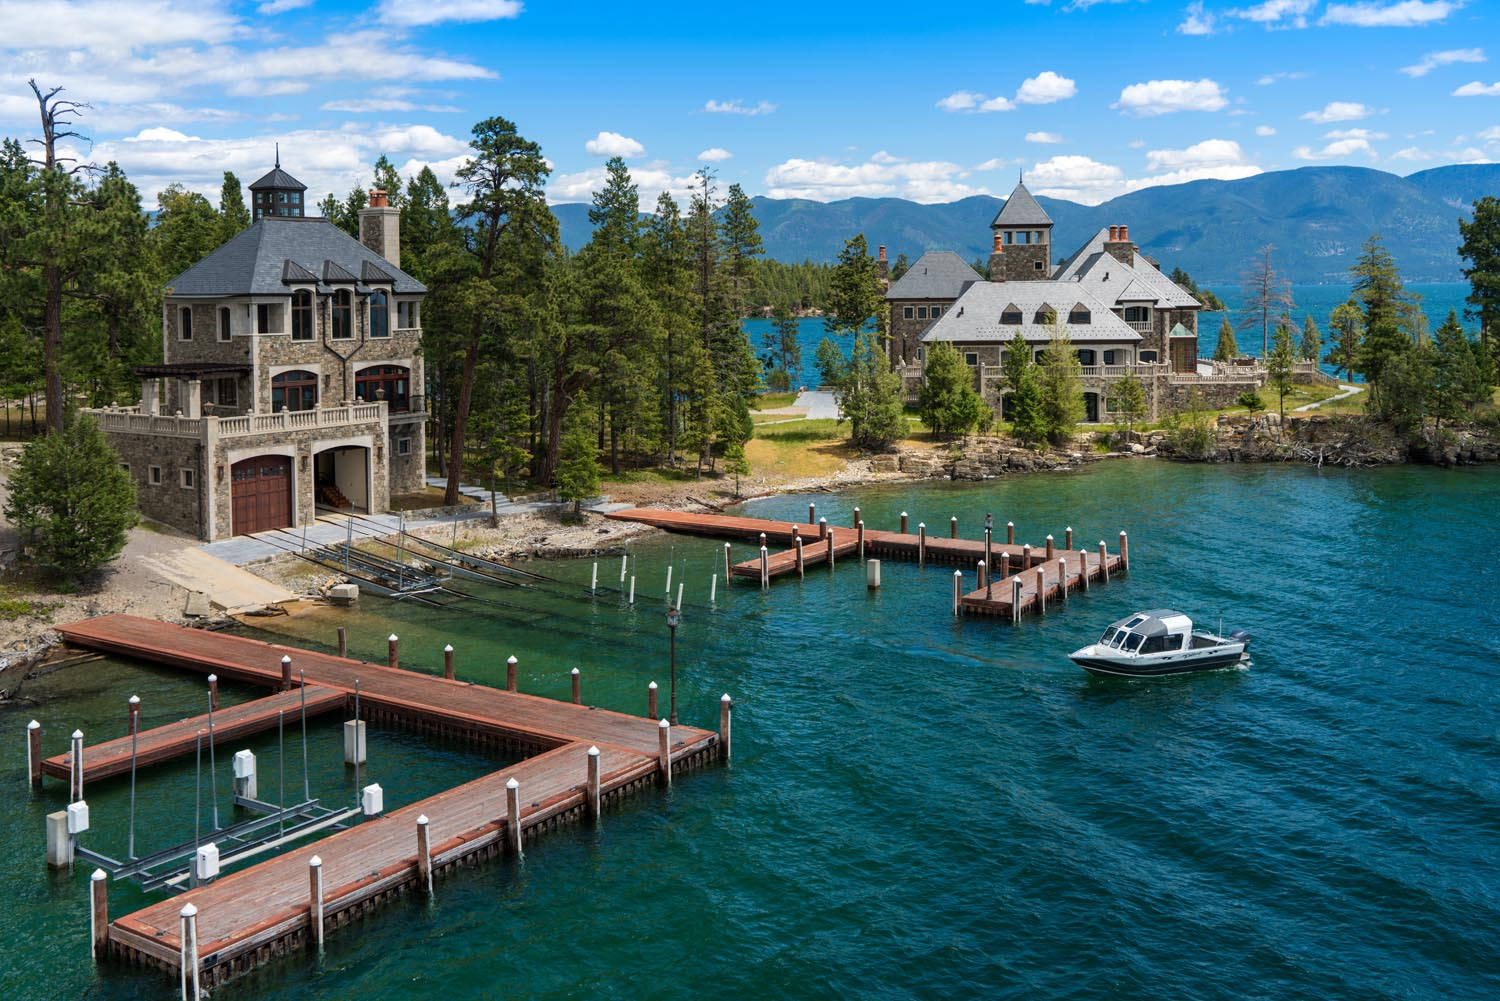 flathead lake island mansion - photo #12